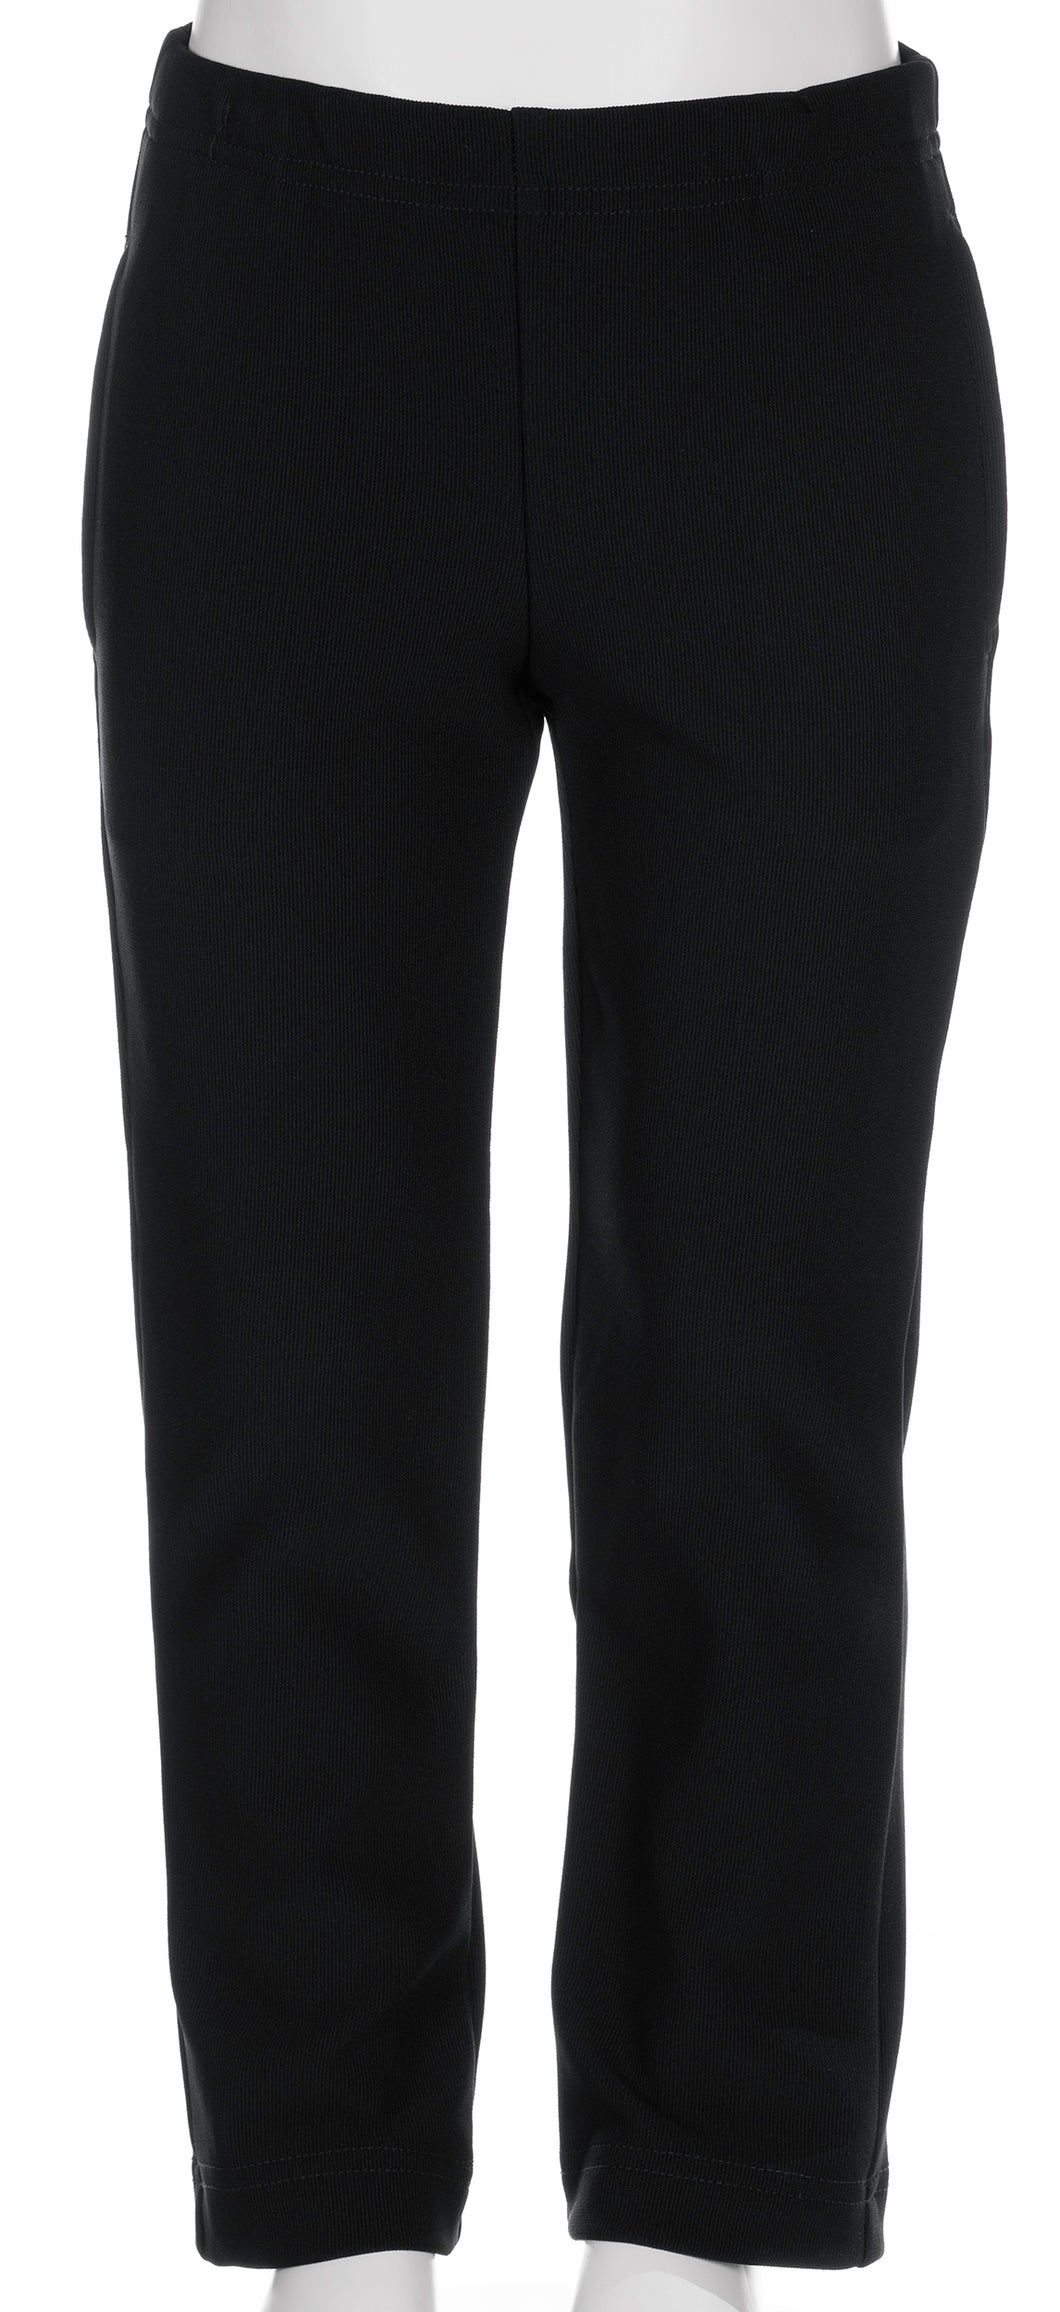 Riverhead School - Girls Long Pants Black